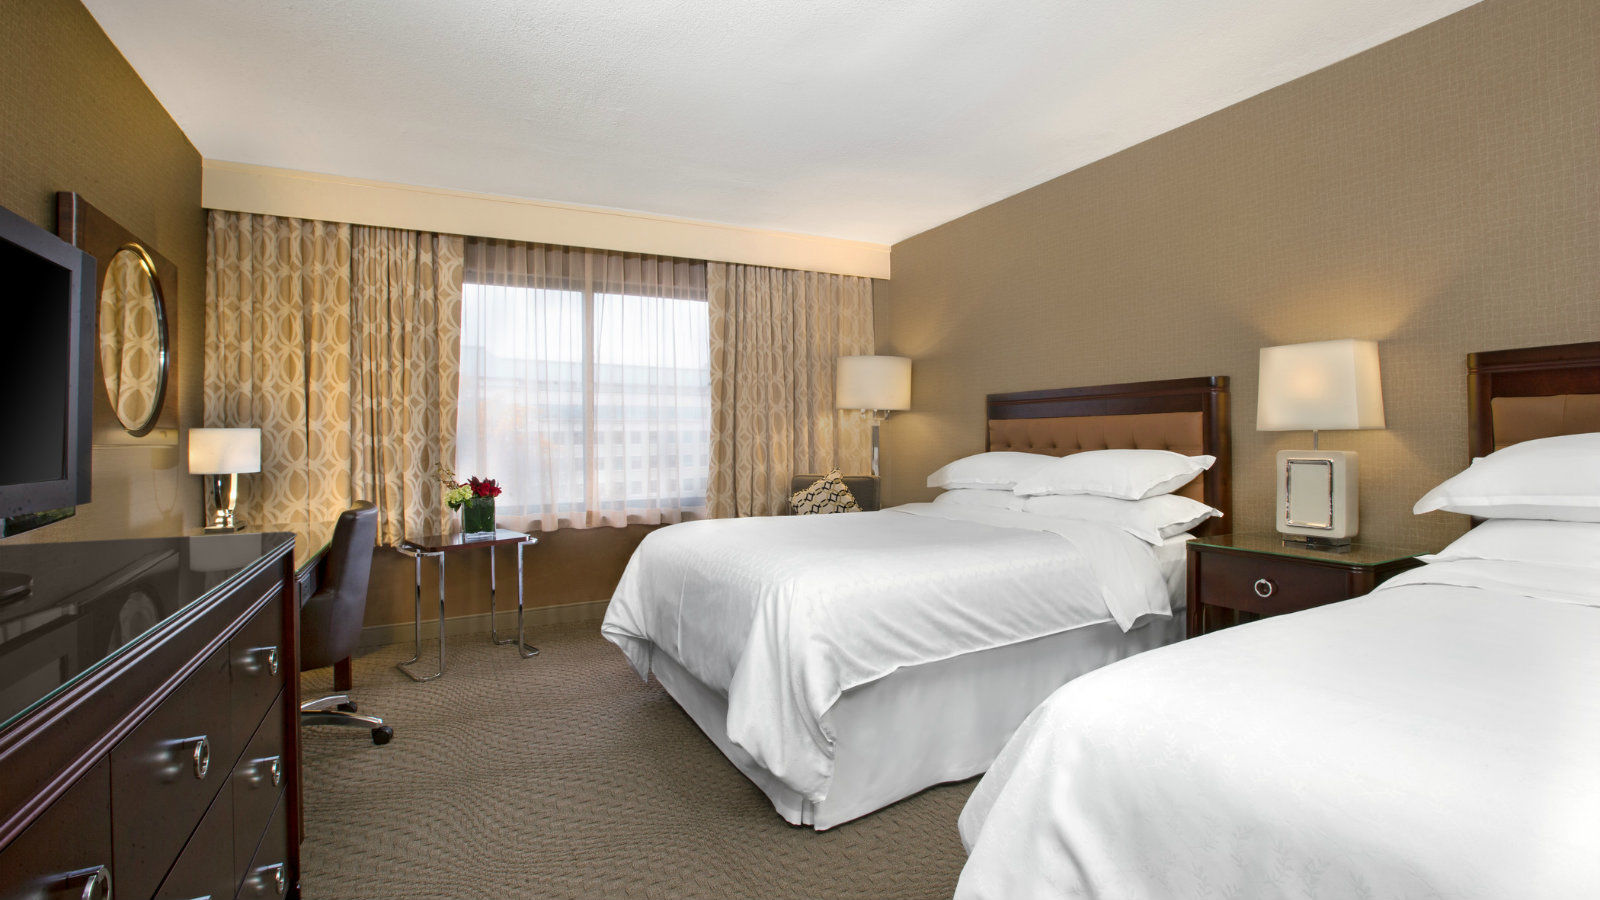 Reston Hotel Rooms